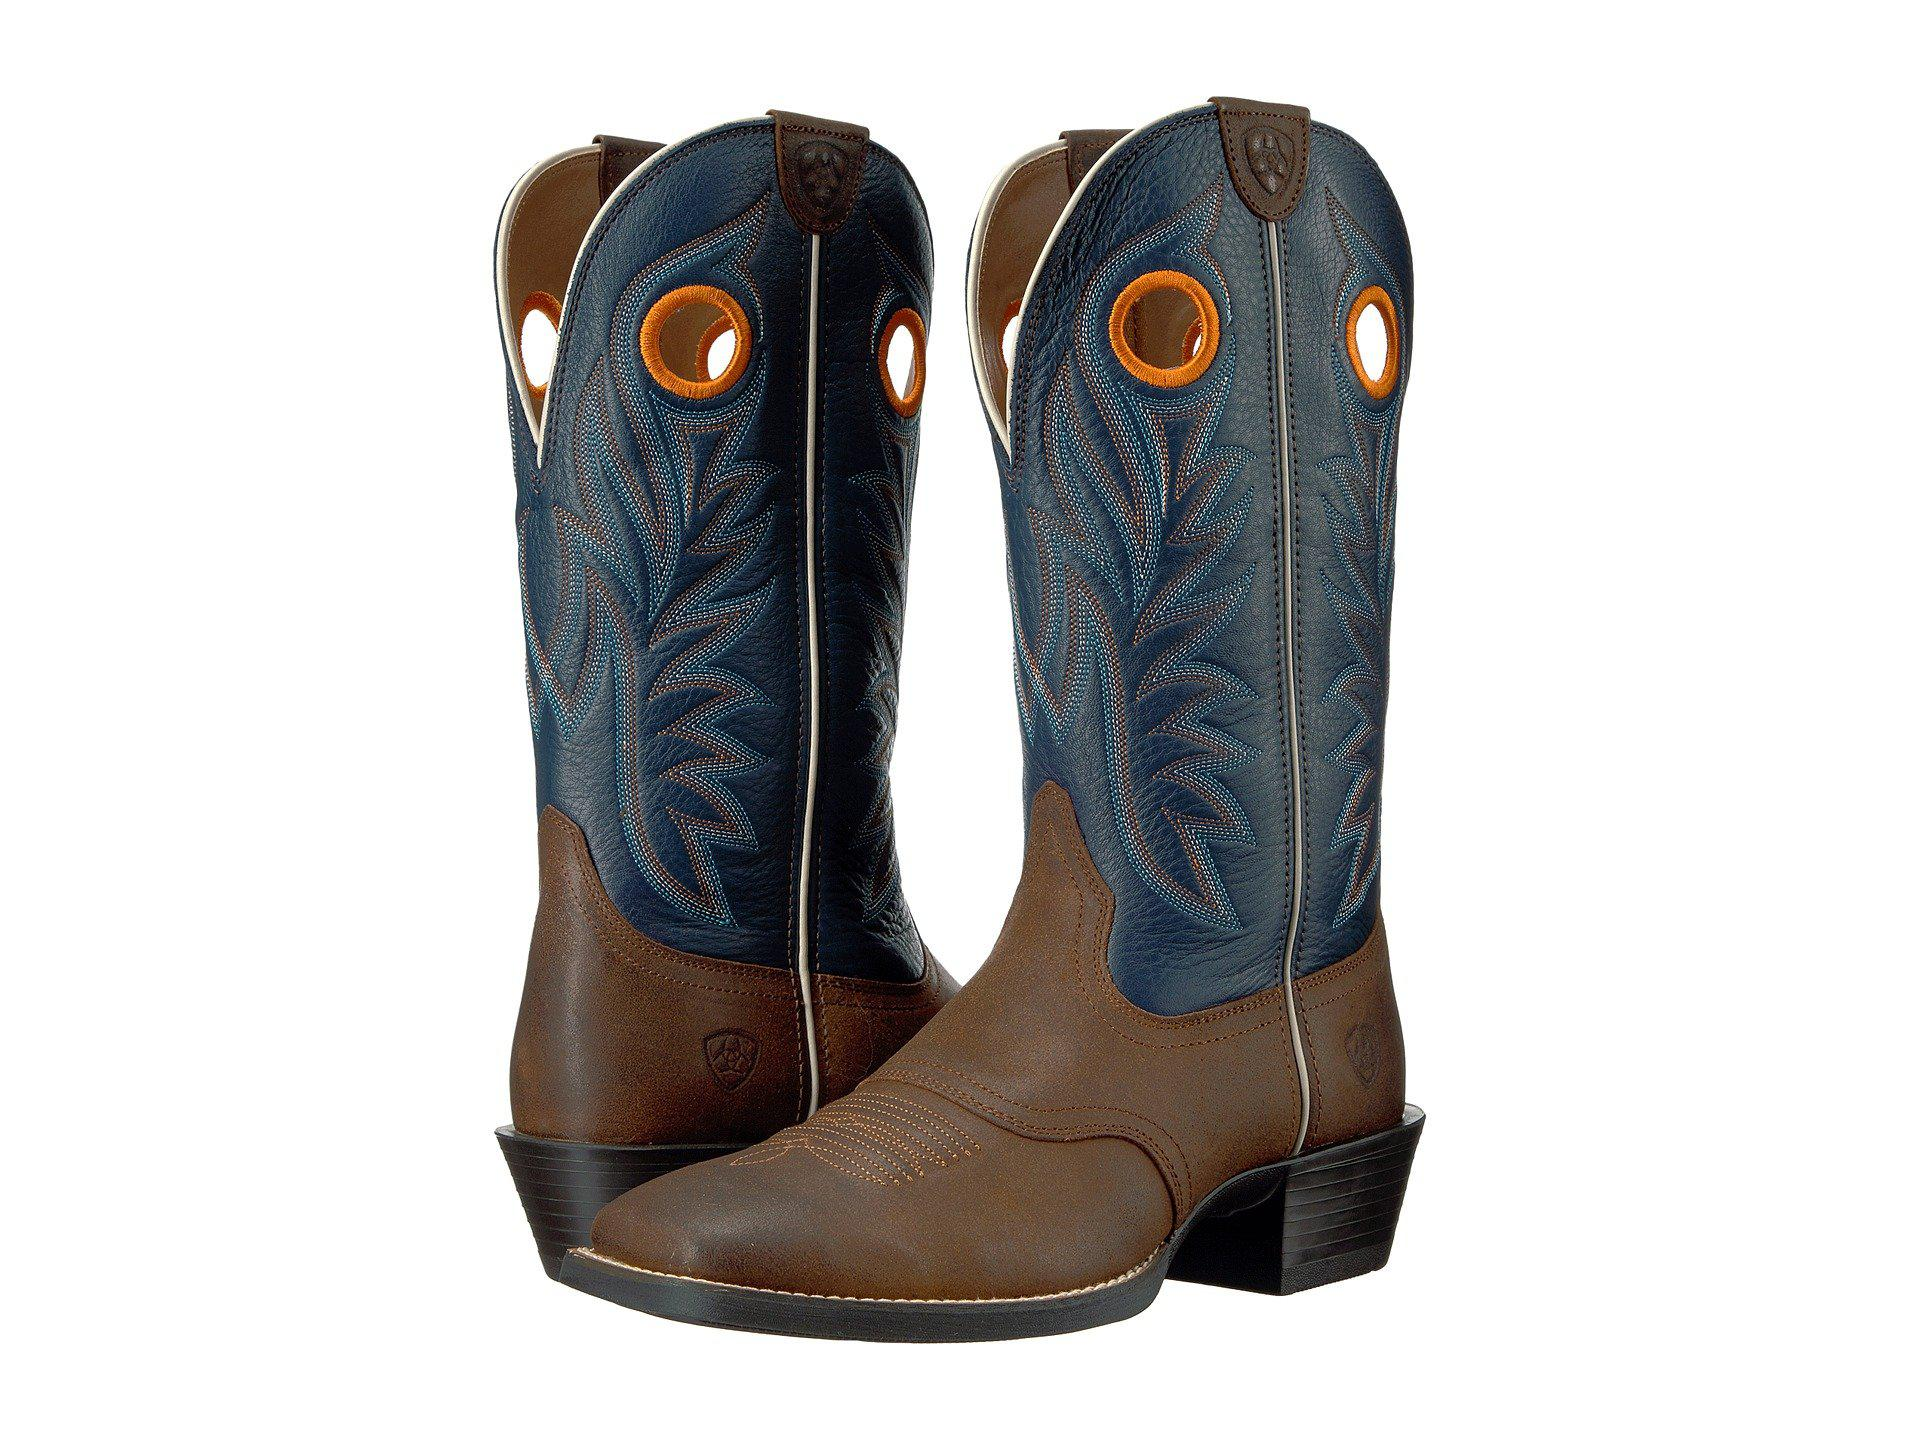 37462317795 Men's Sport Outrider (pinecone/federal Blue) Cowboy Boots